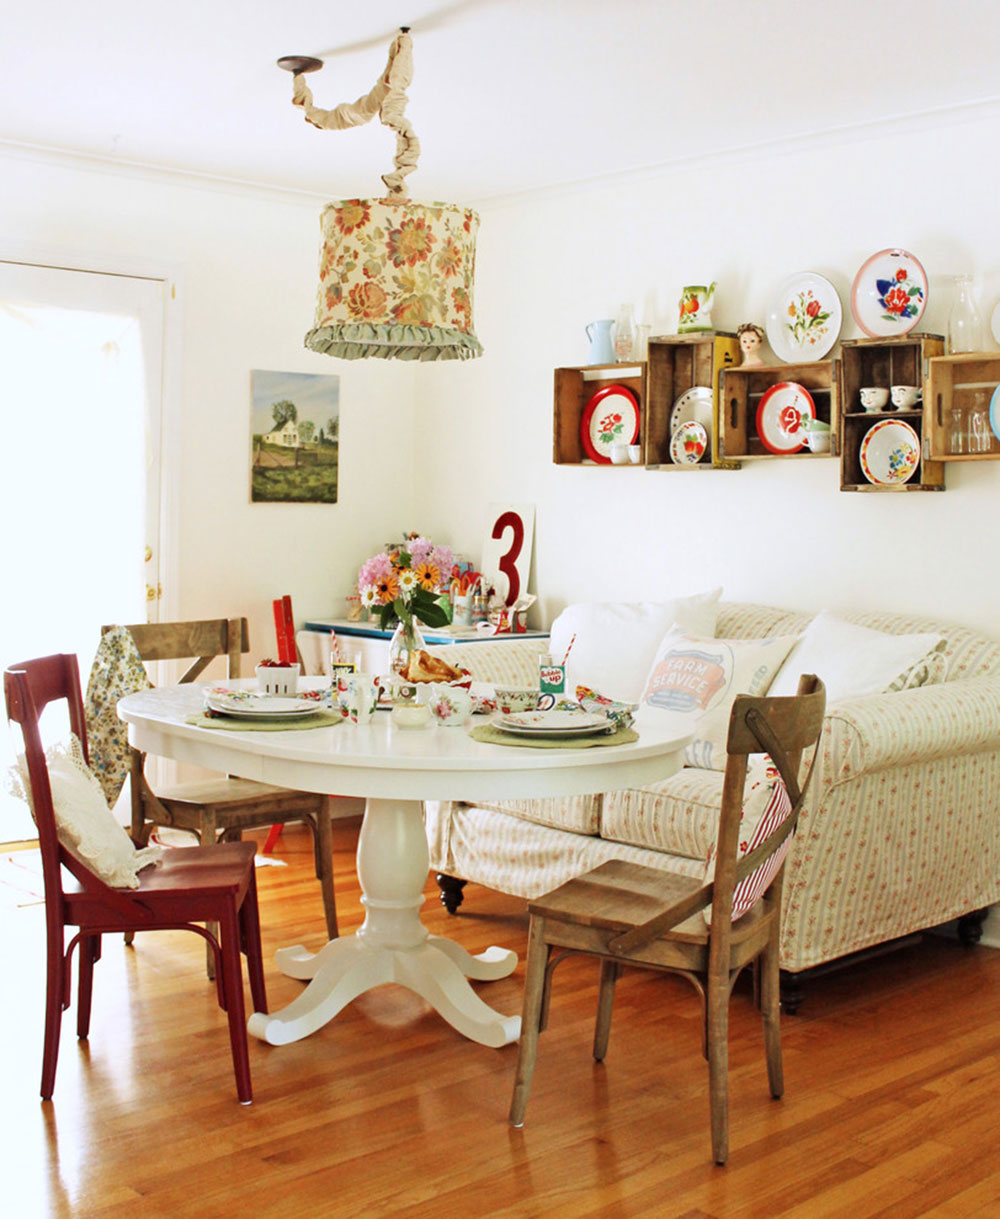 Cottage-Style-Designs-Can-Look-Great6 Cottage-Style Designs can look great